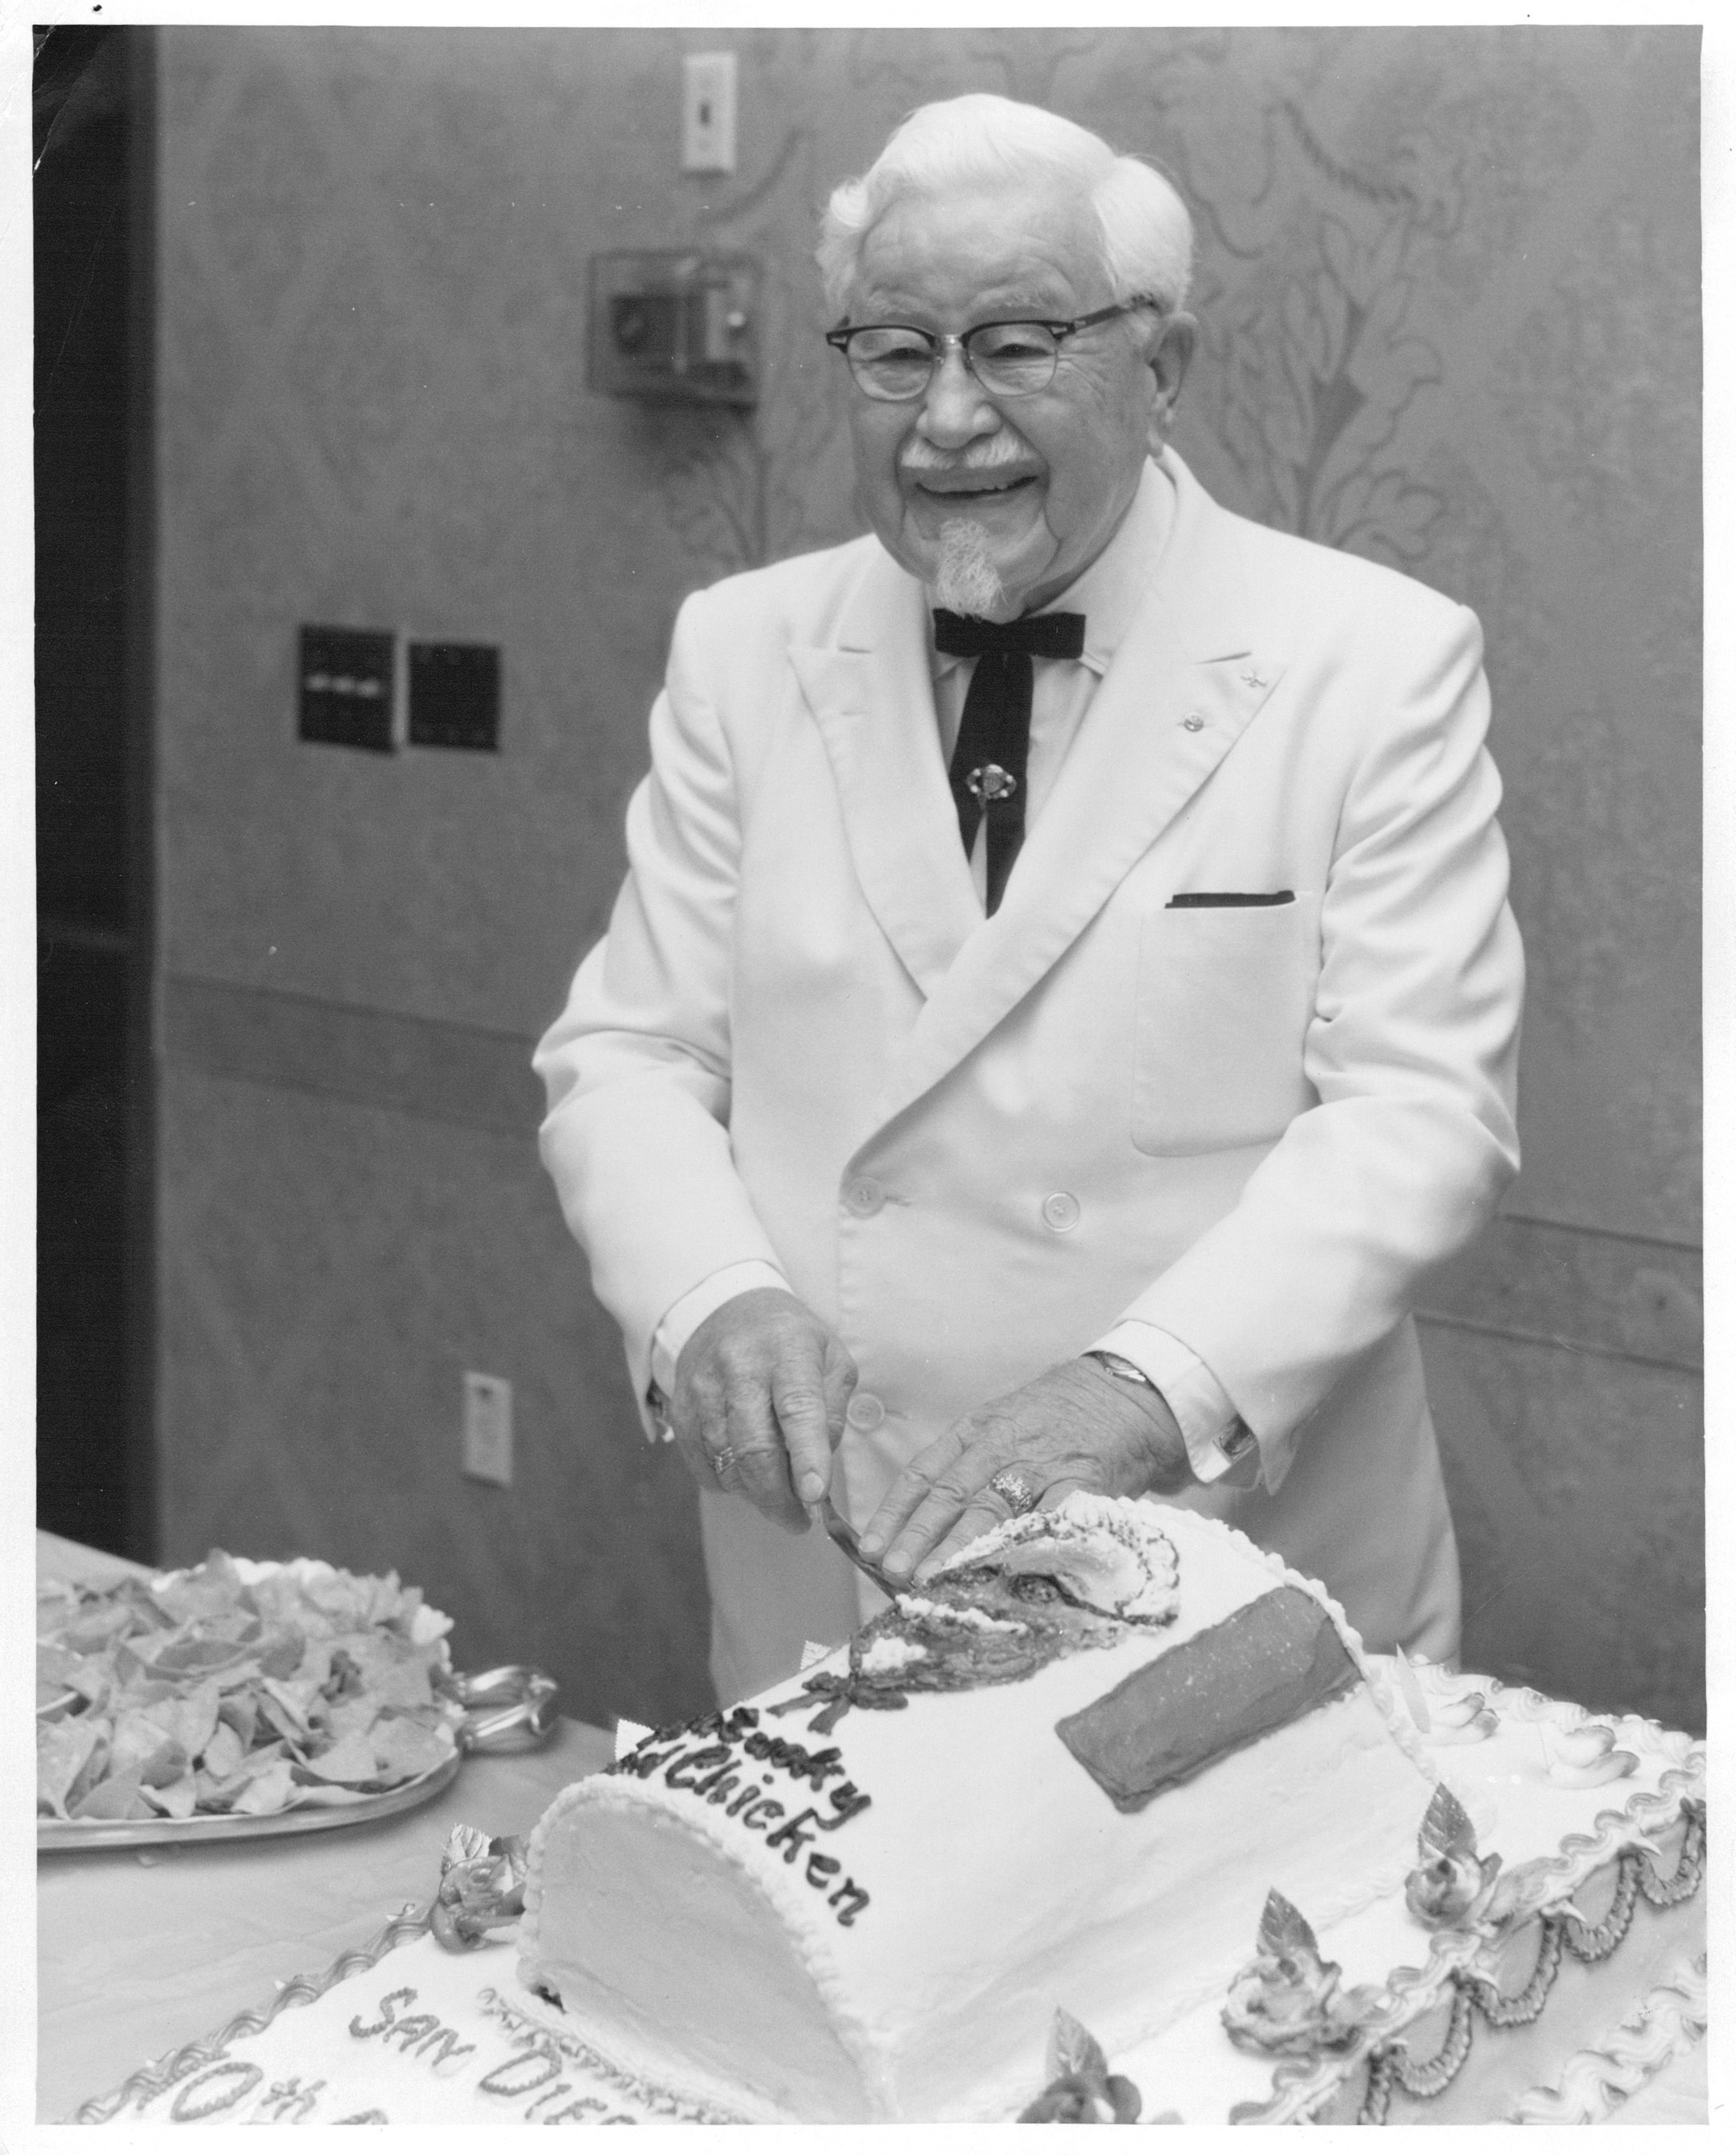 Colonel Sanders, Still Trending at 125 Years Old